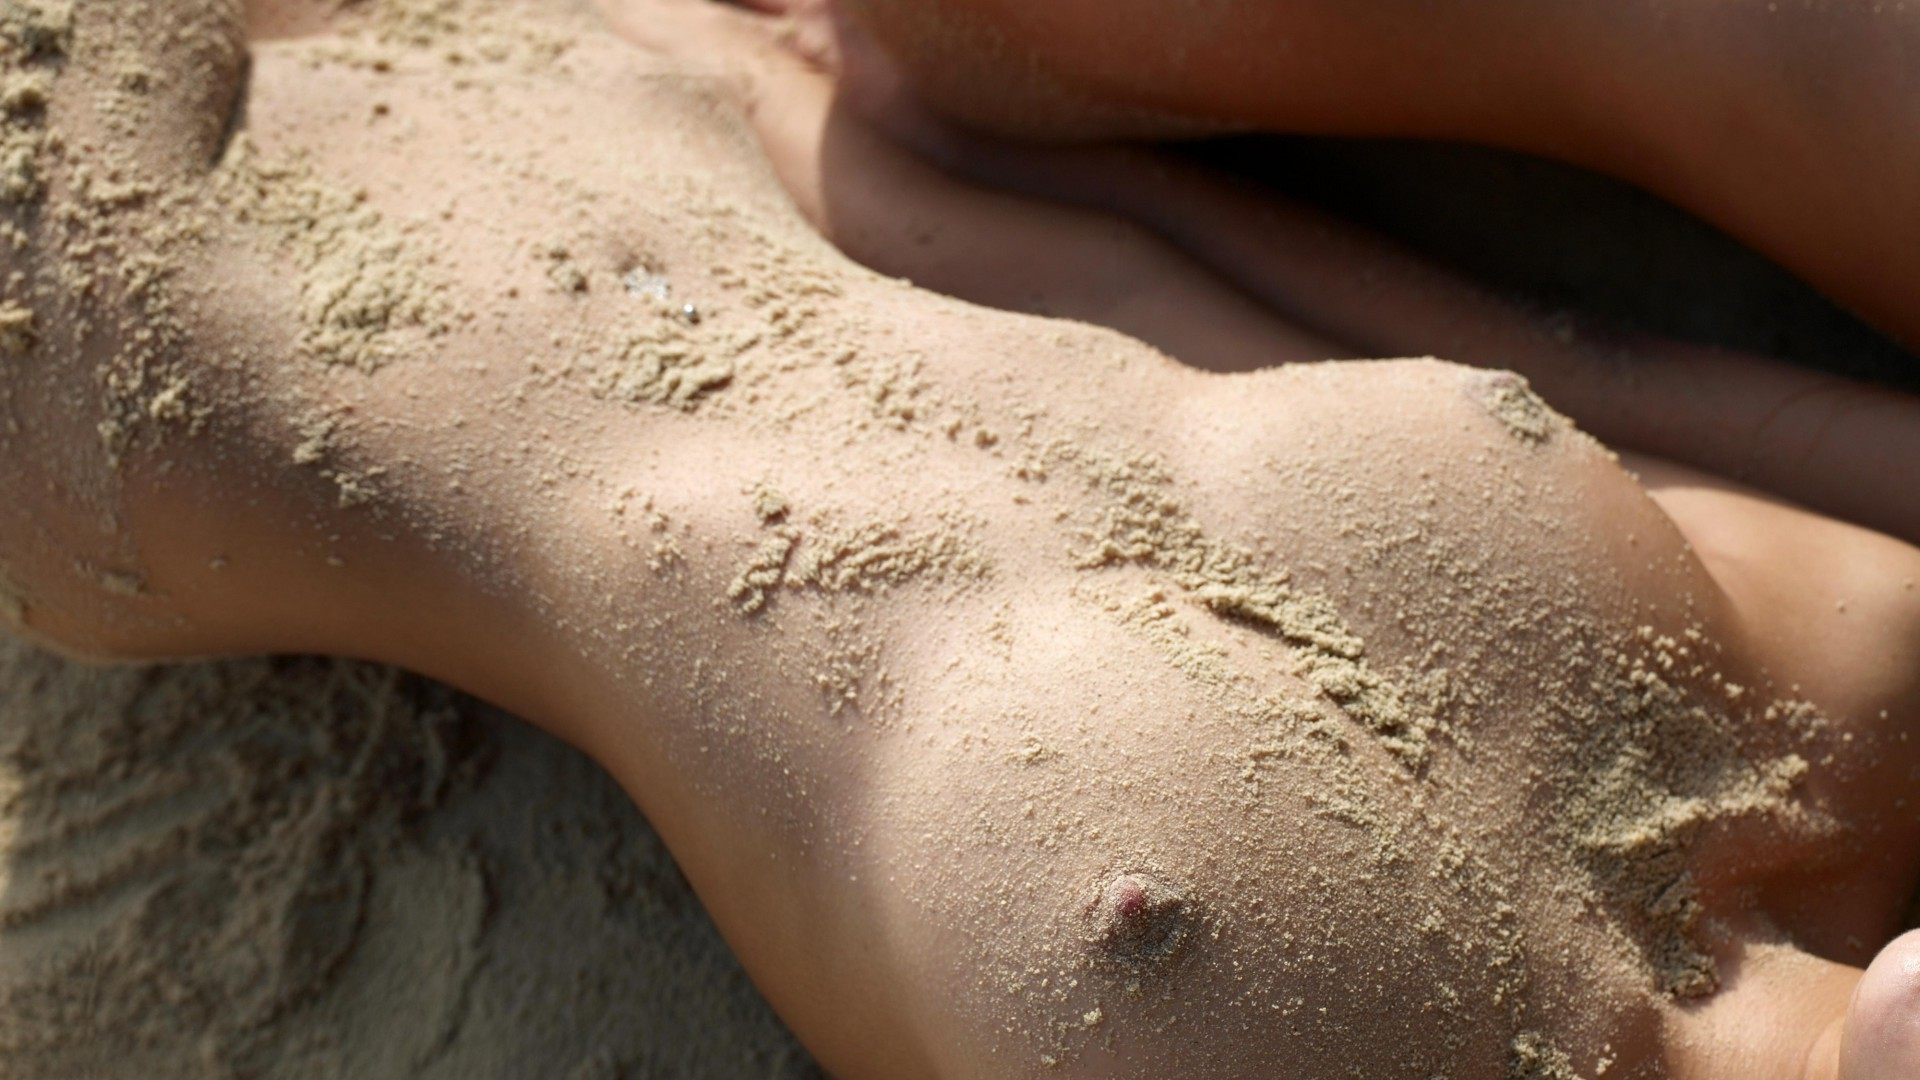 Naked female body in the sand